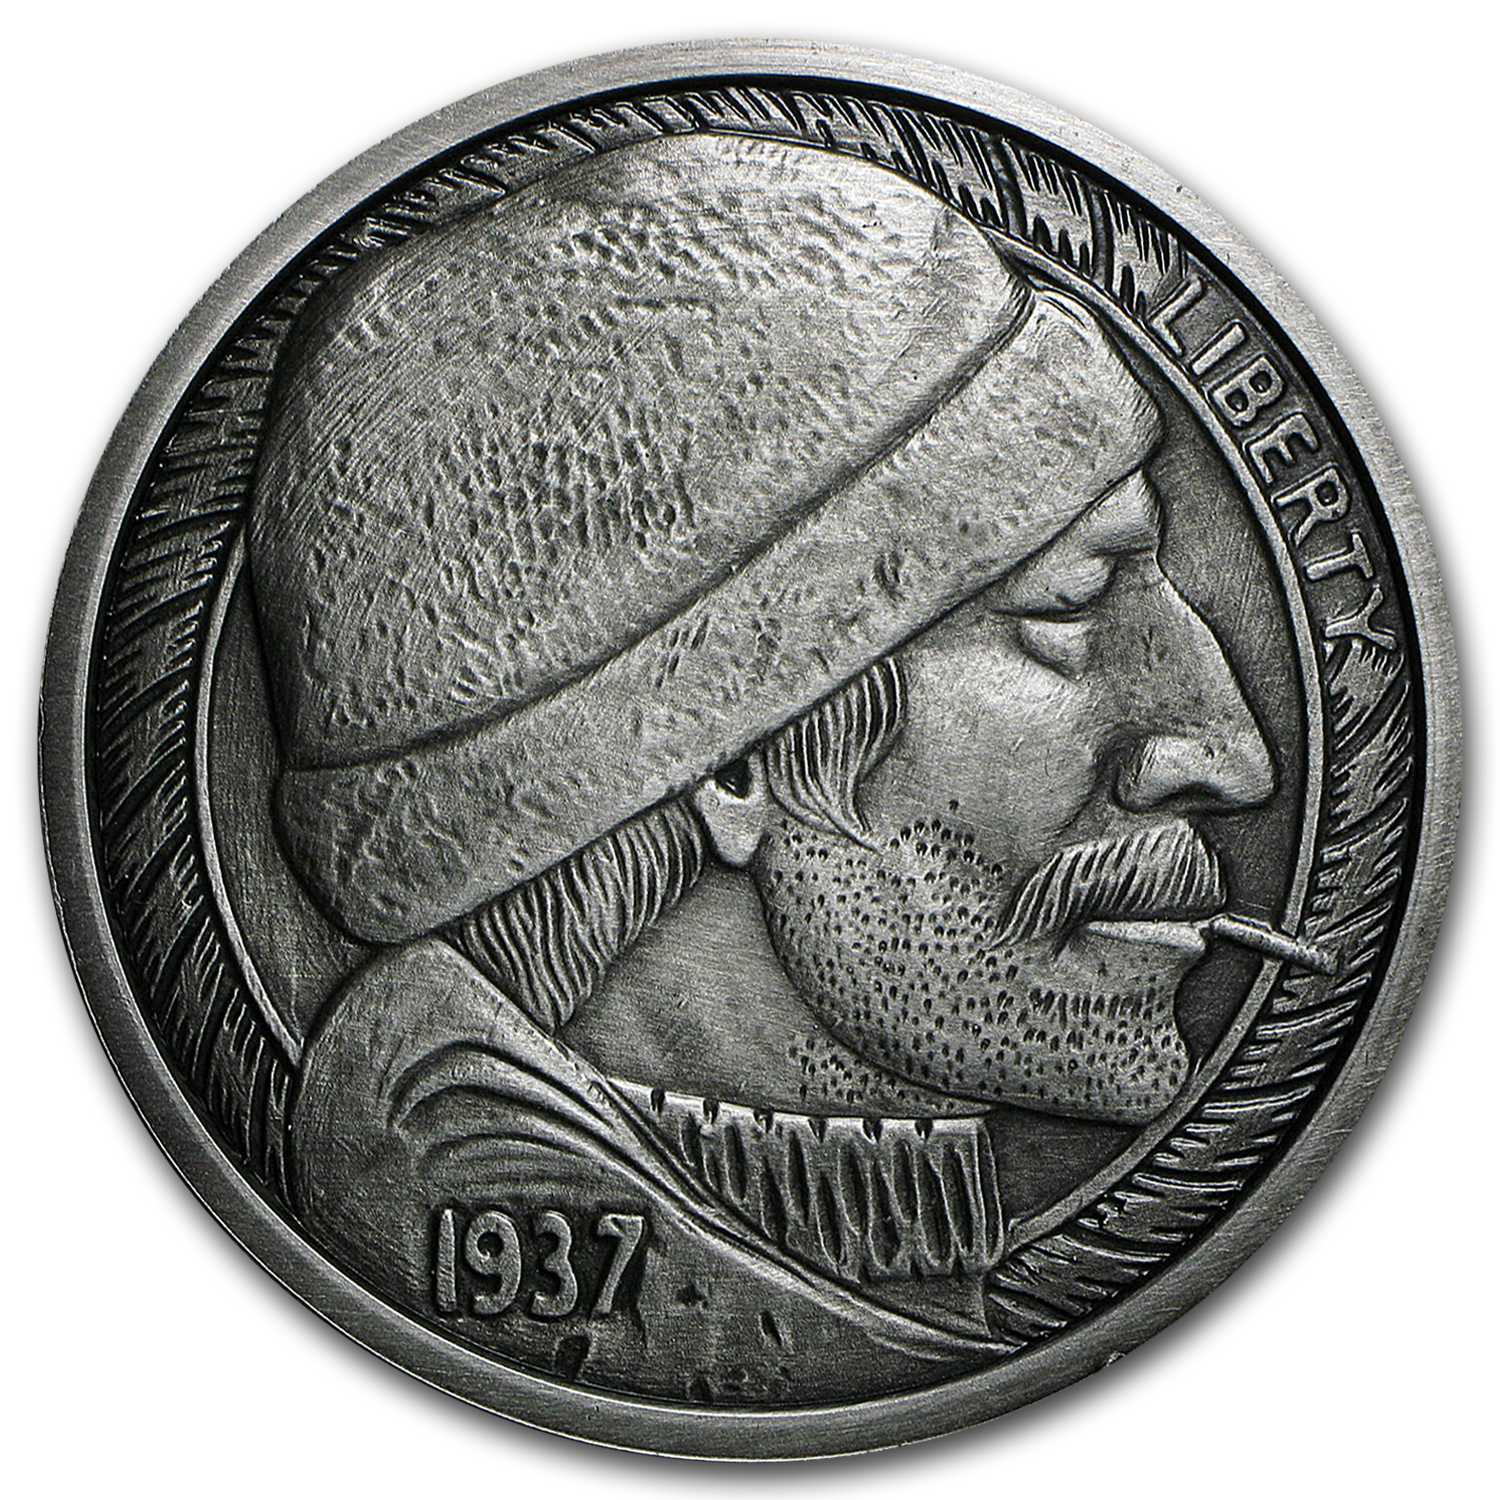 5 oz Silver Antique Round - Hobo Nickel Replica (The Fisherman)